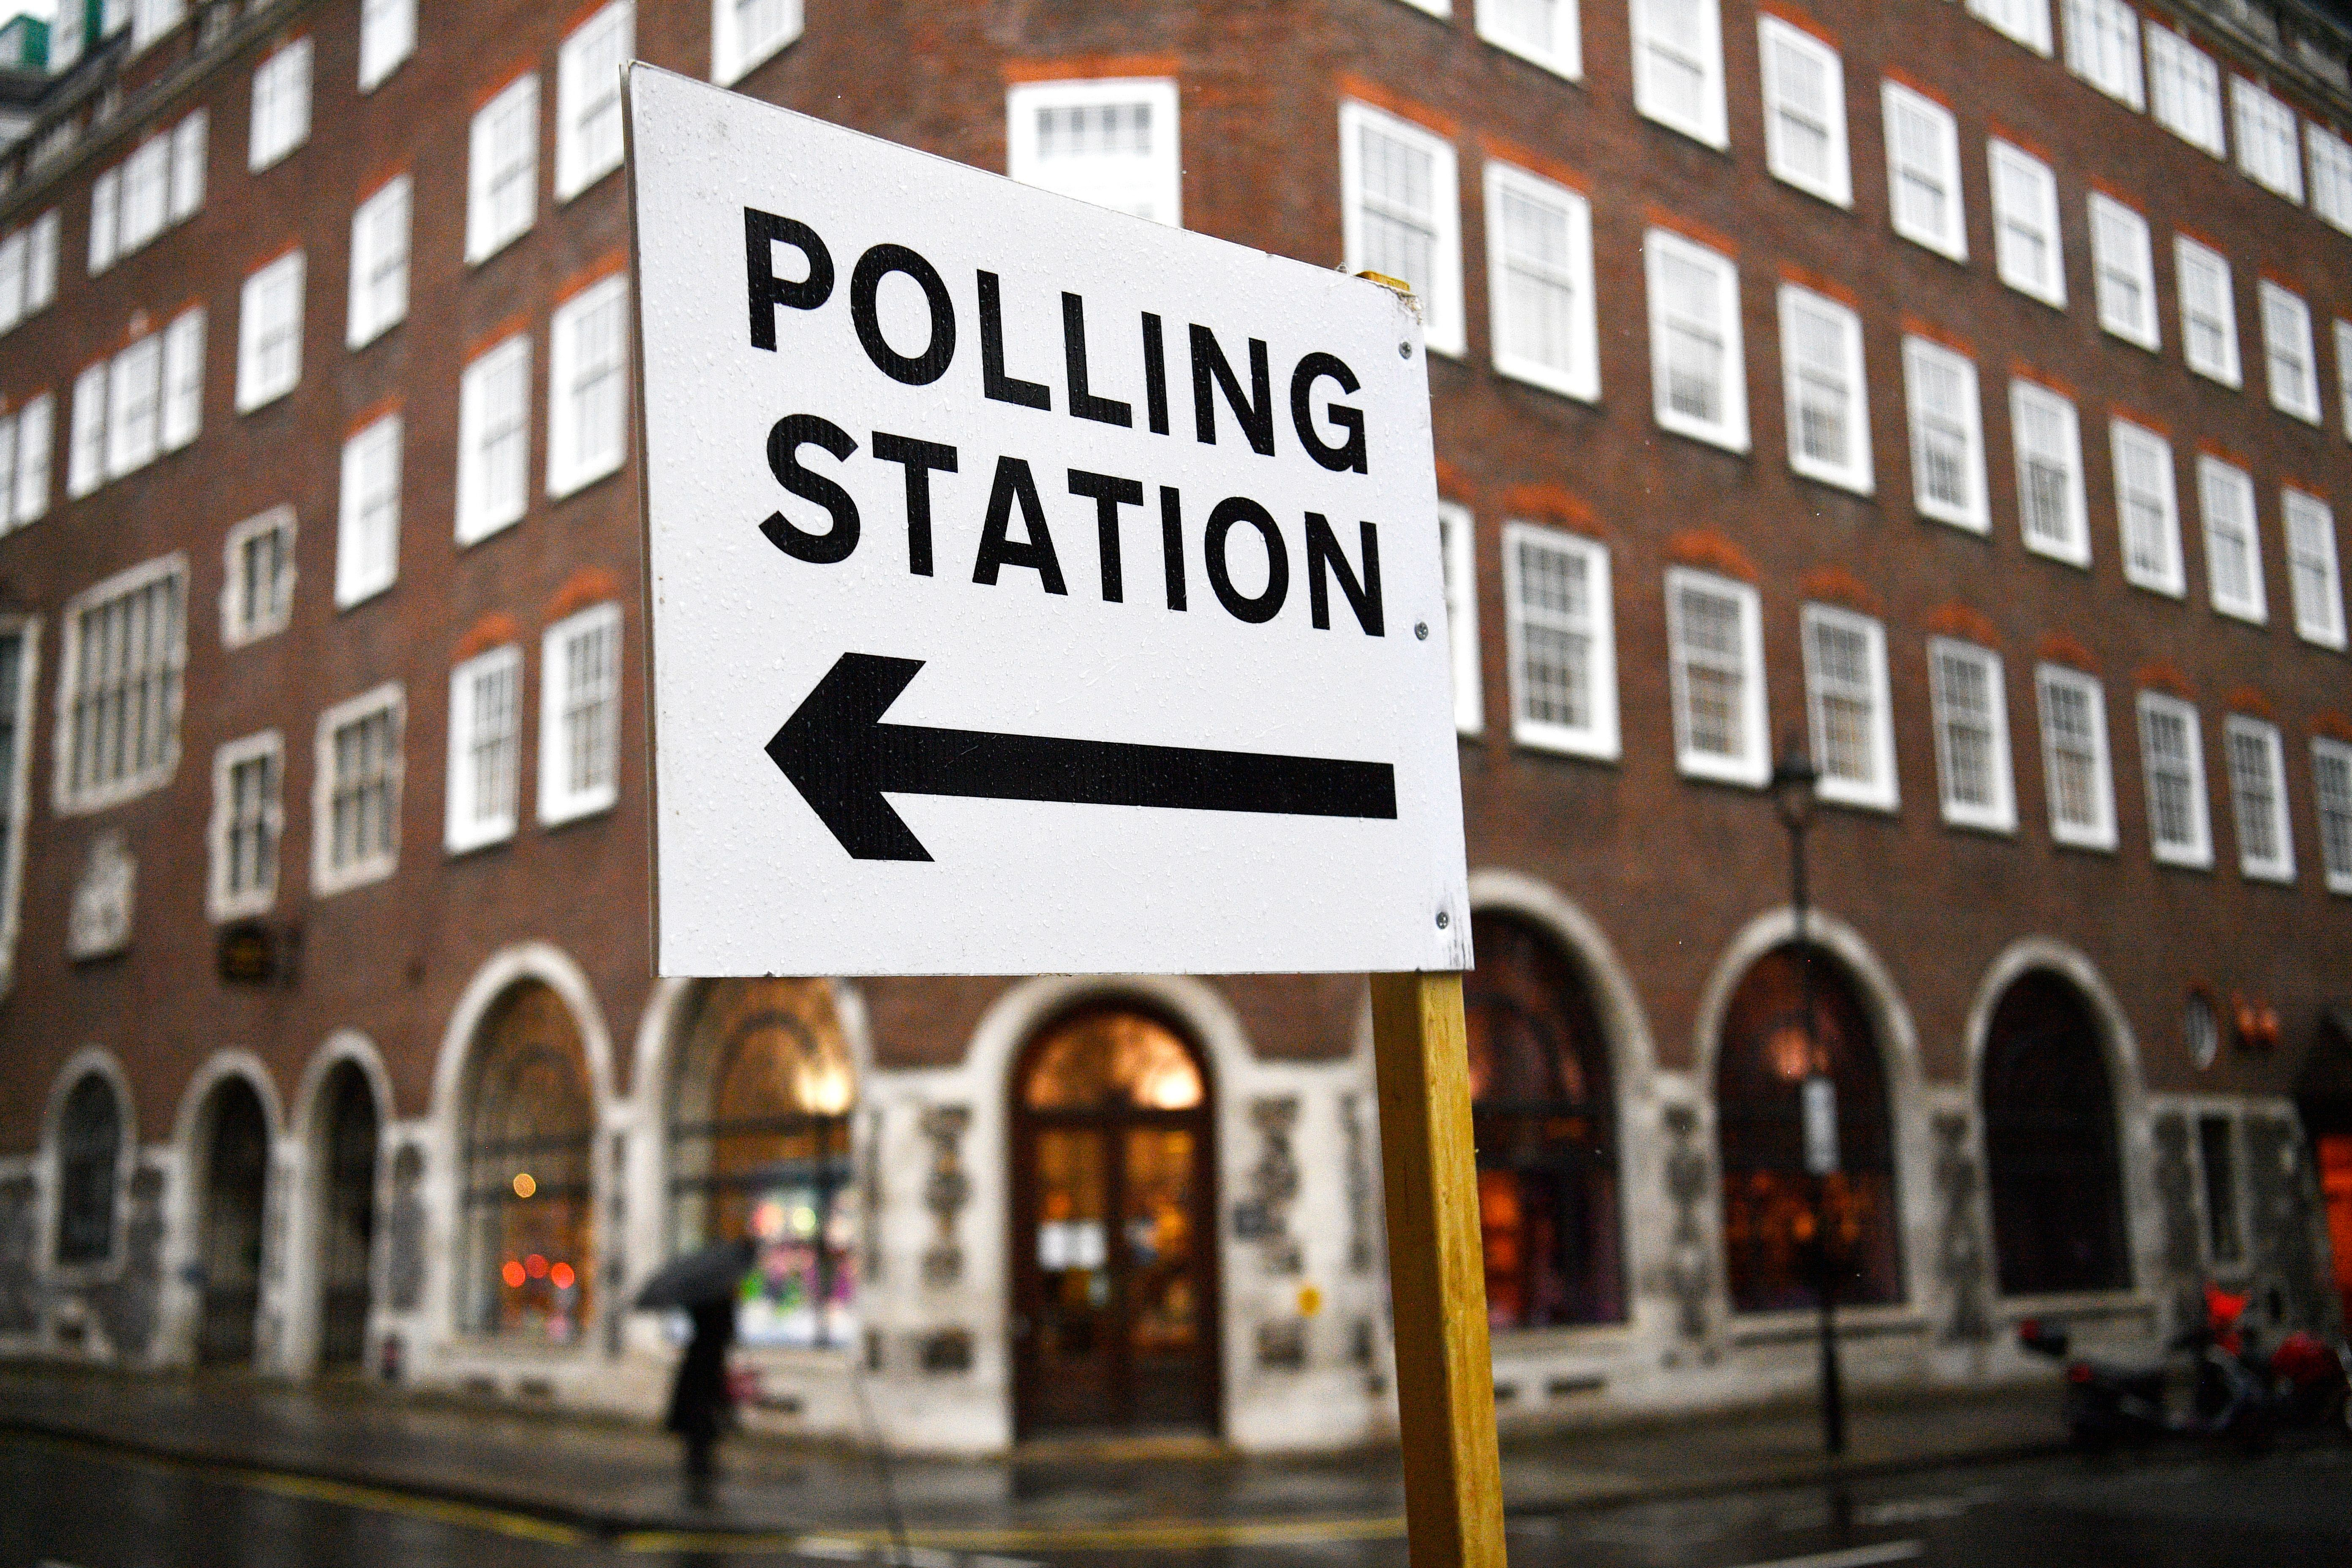 A polling station sign in London, Britain, 10 December 2019. Britons go to the polls on 12 December in a general election.Brexit Party General Election, London, United Kingdom - 10 Dec 2019